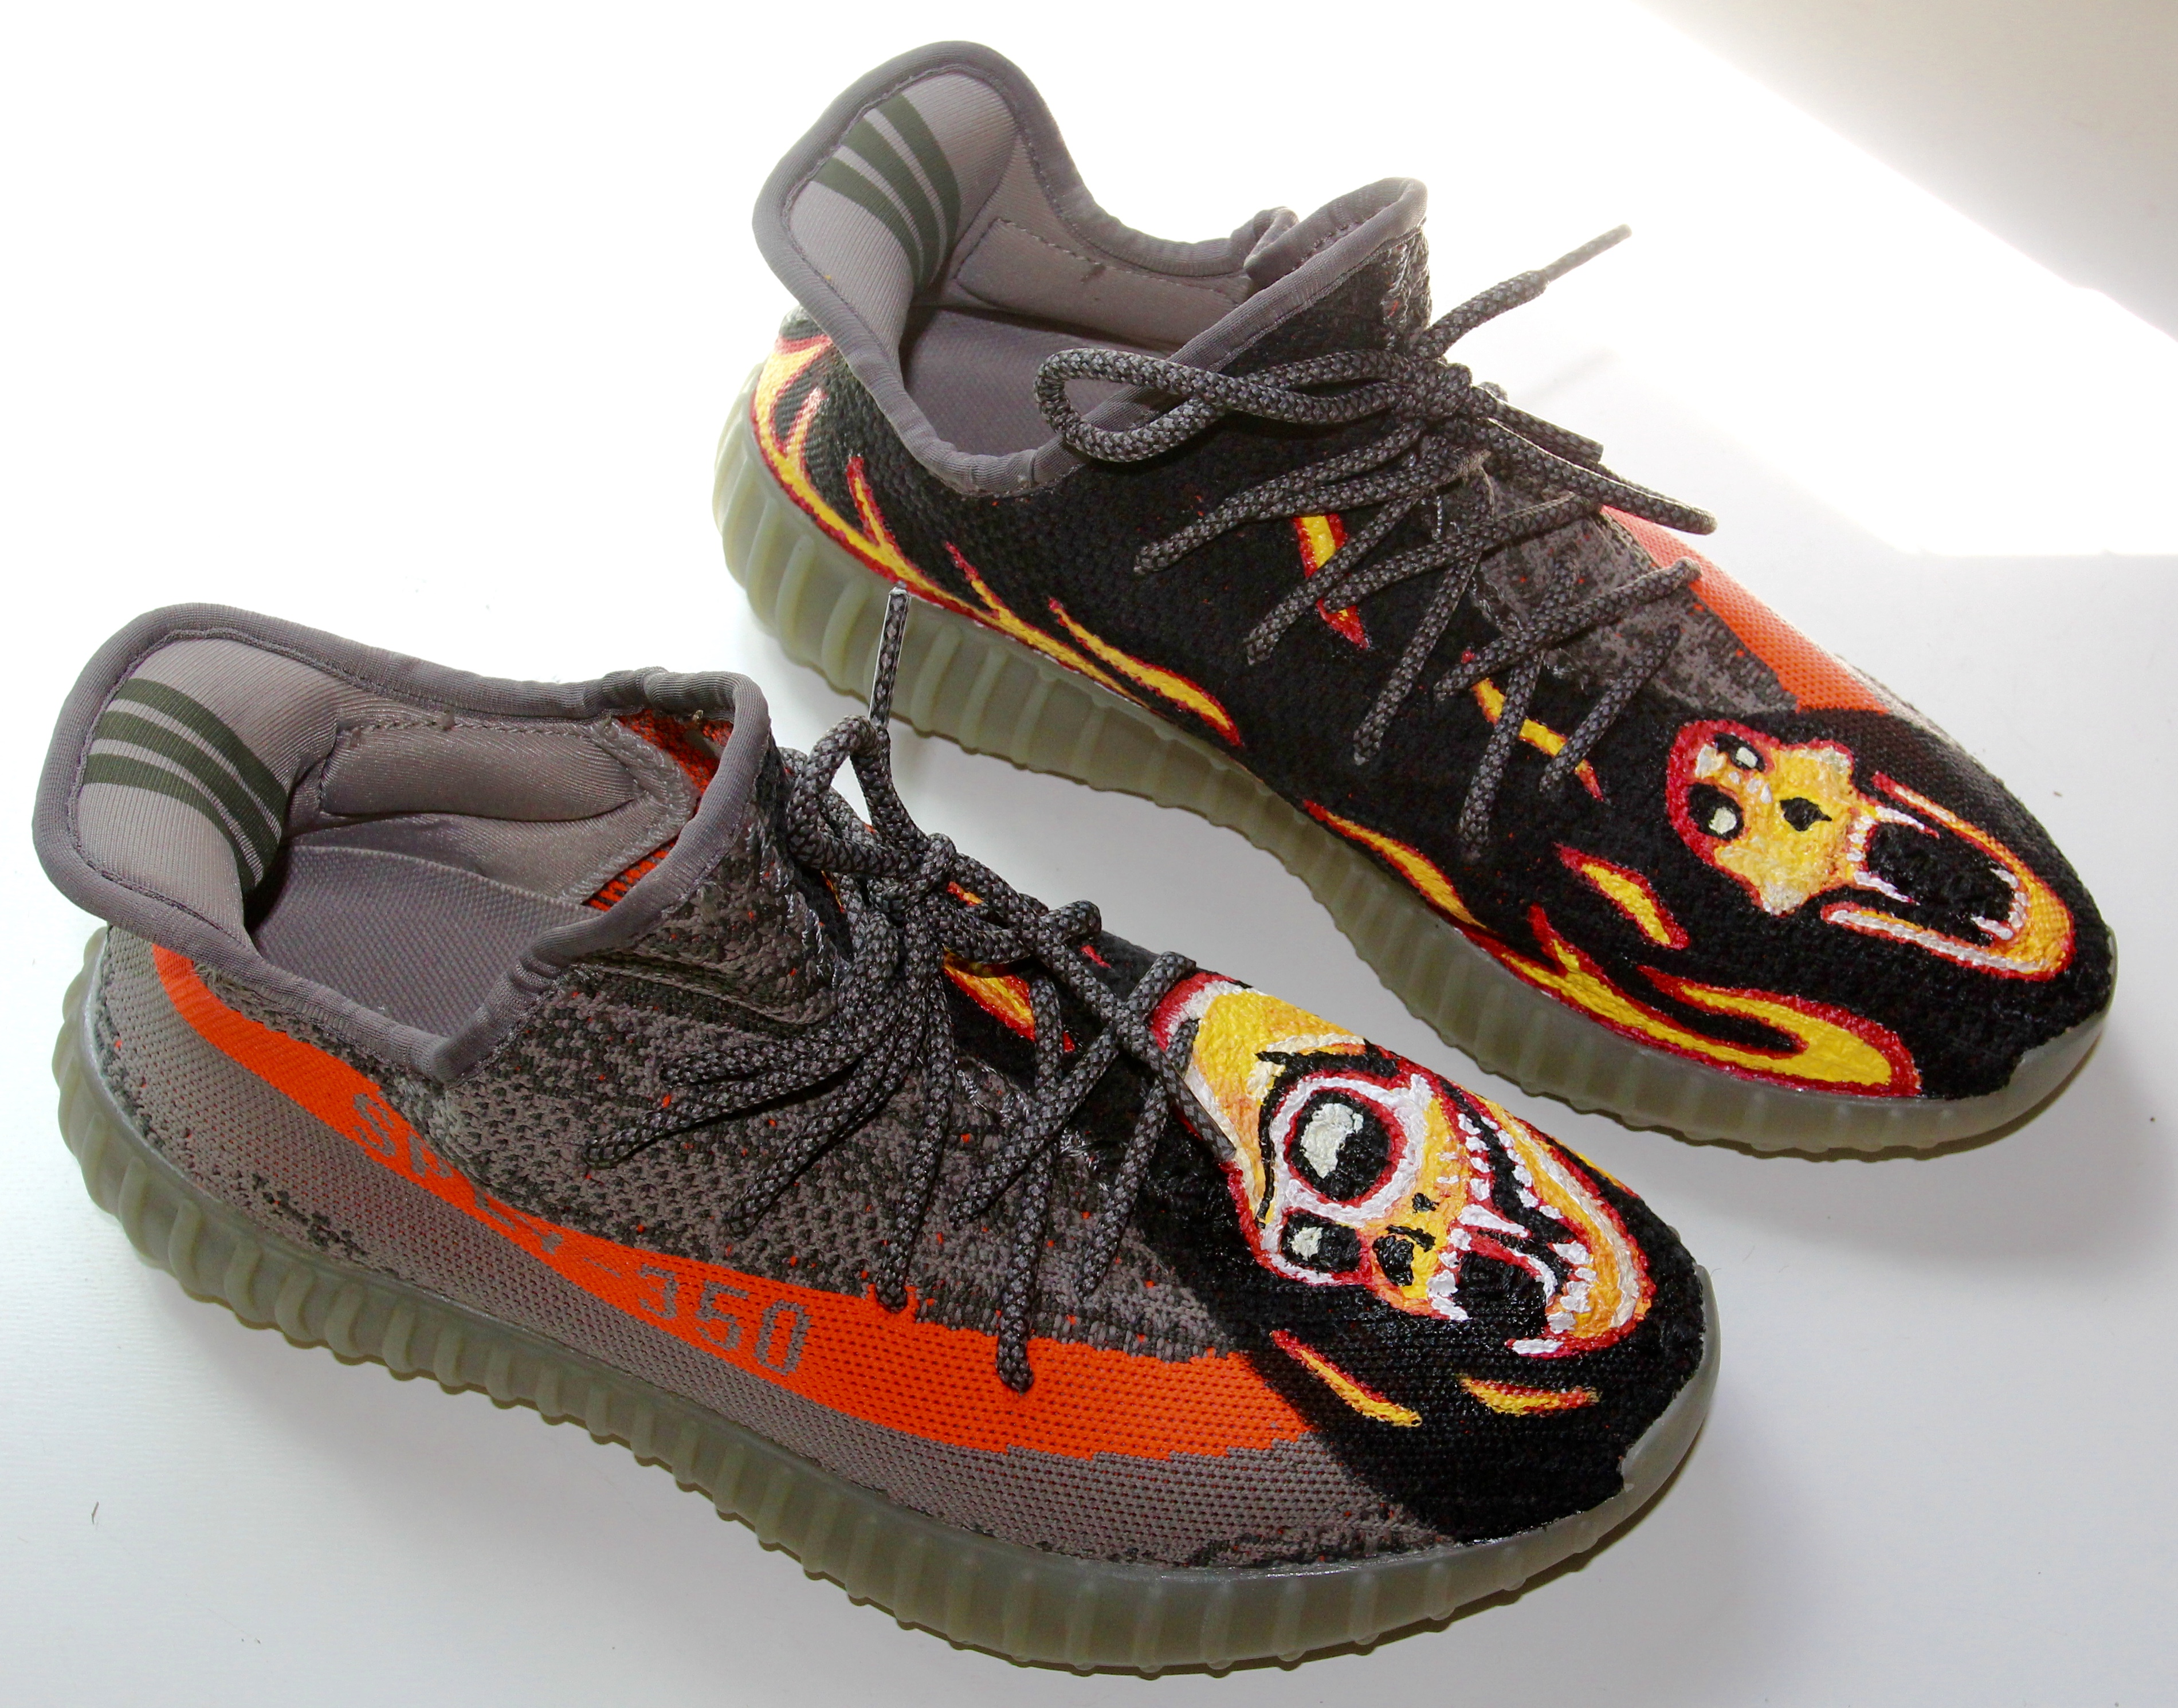 Hand painted Adidas Yeezy!